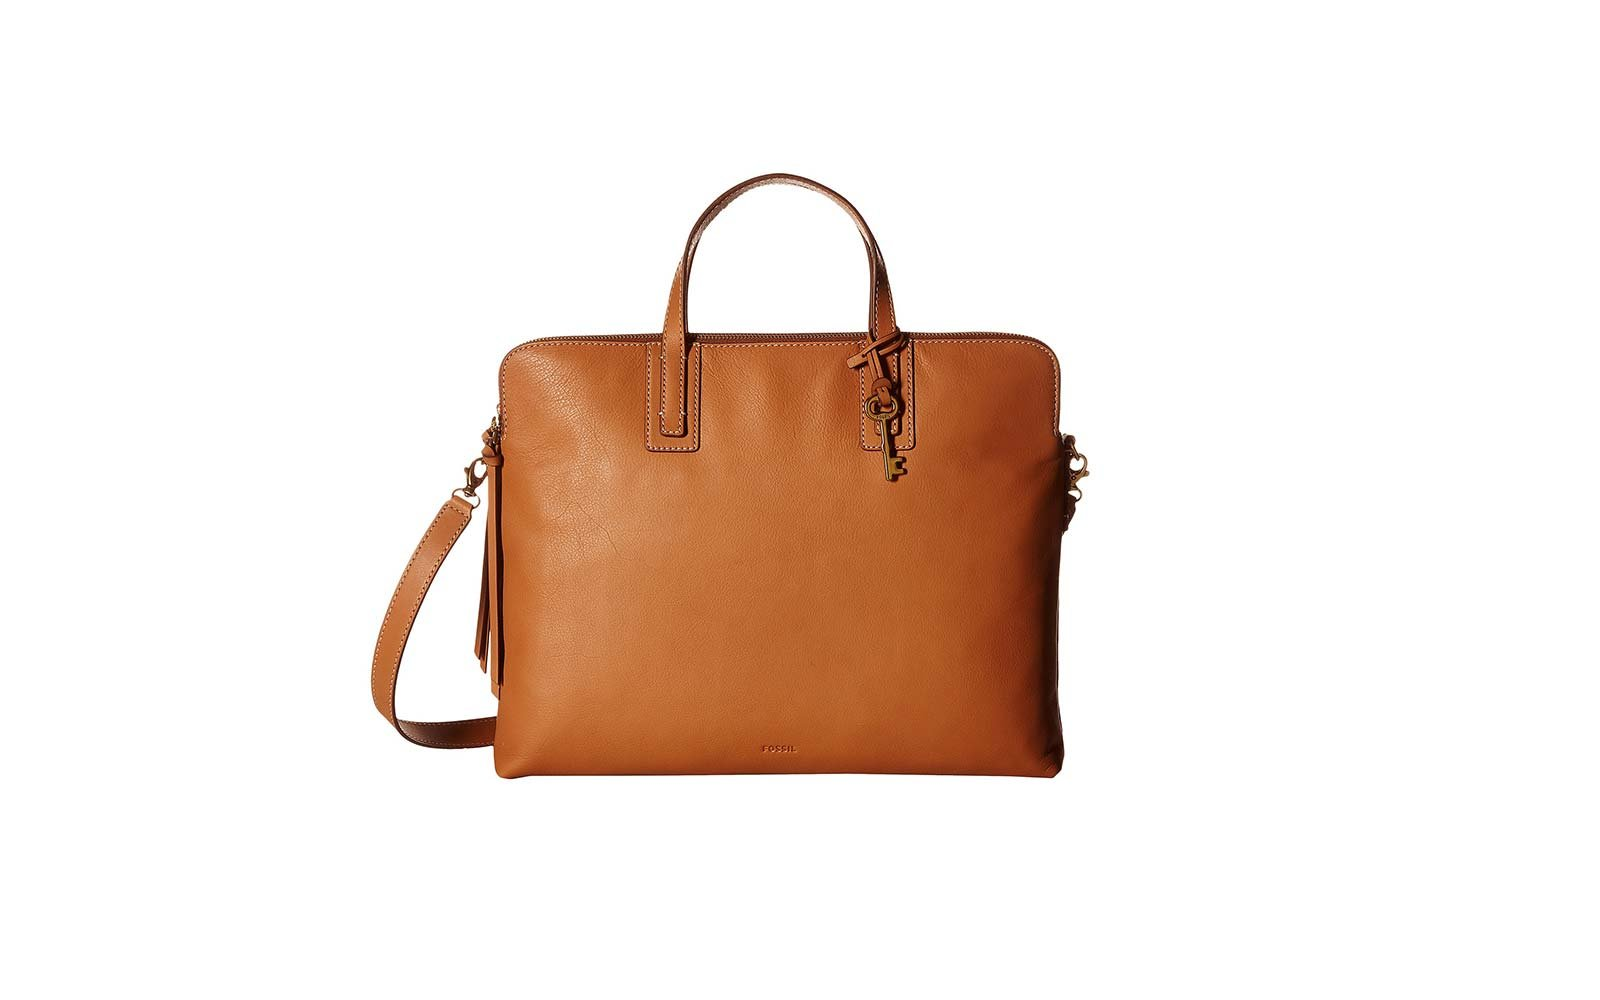 21 Stylish Laptop Bags for Business Travel